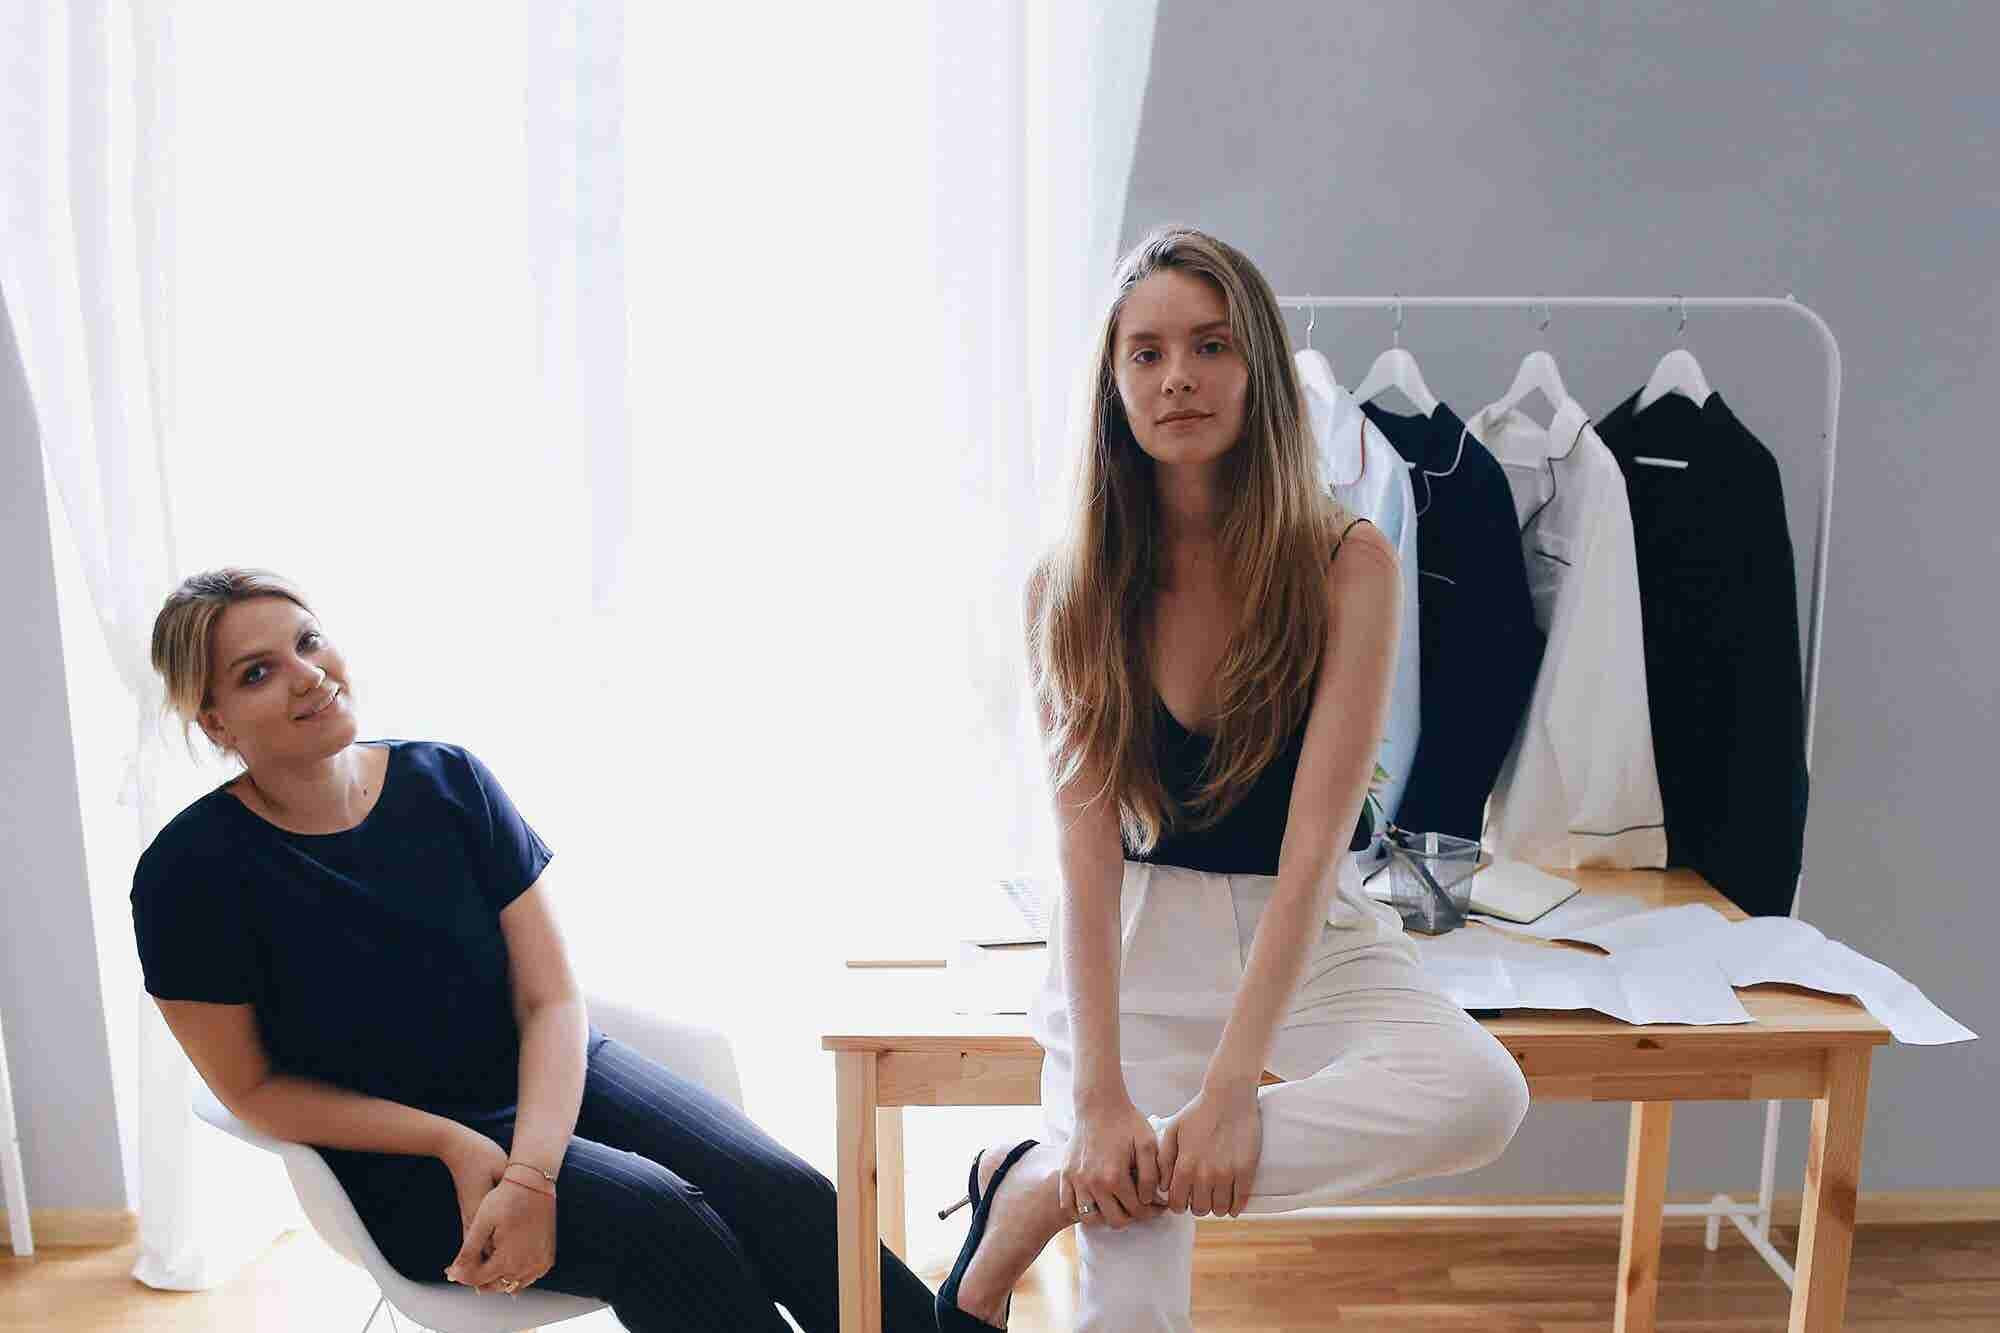 How This Luxury Sleepwear Business Found Its Footing Amid a Revolution